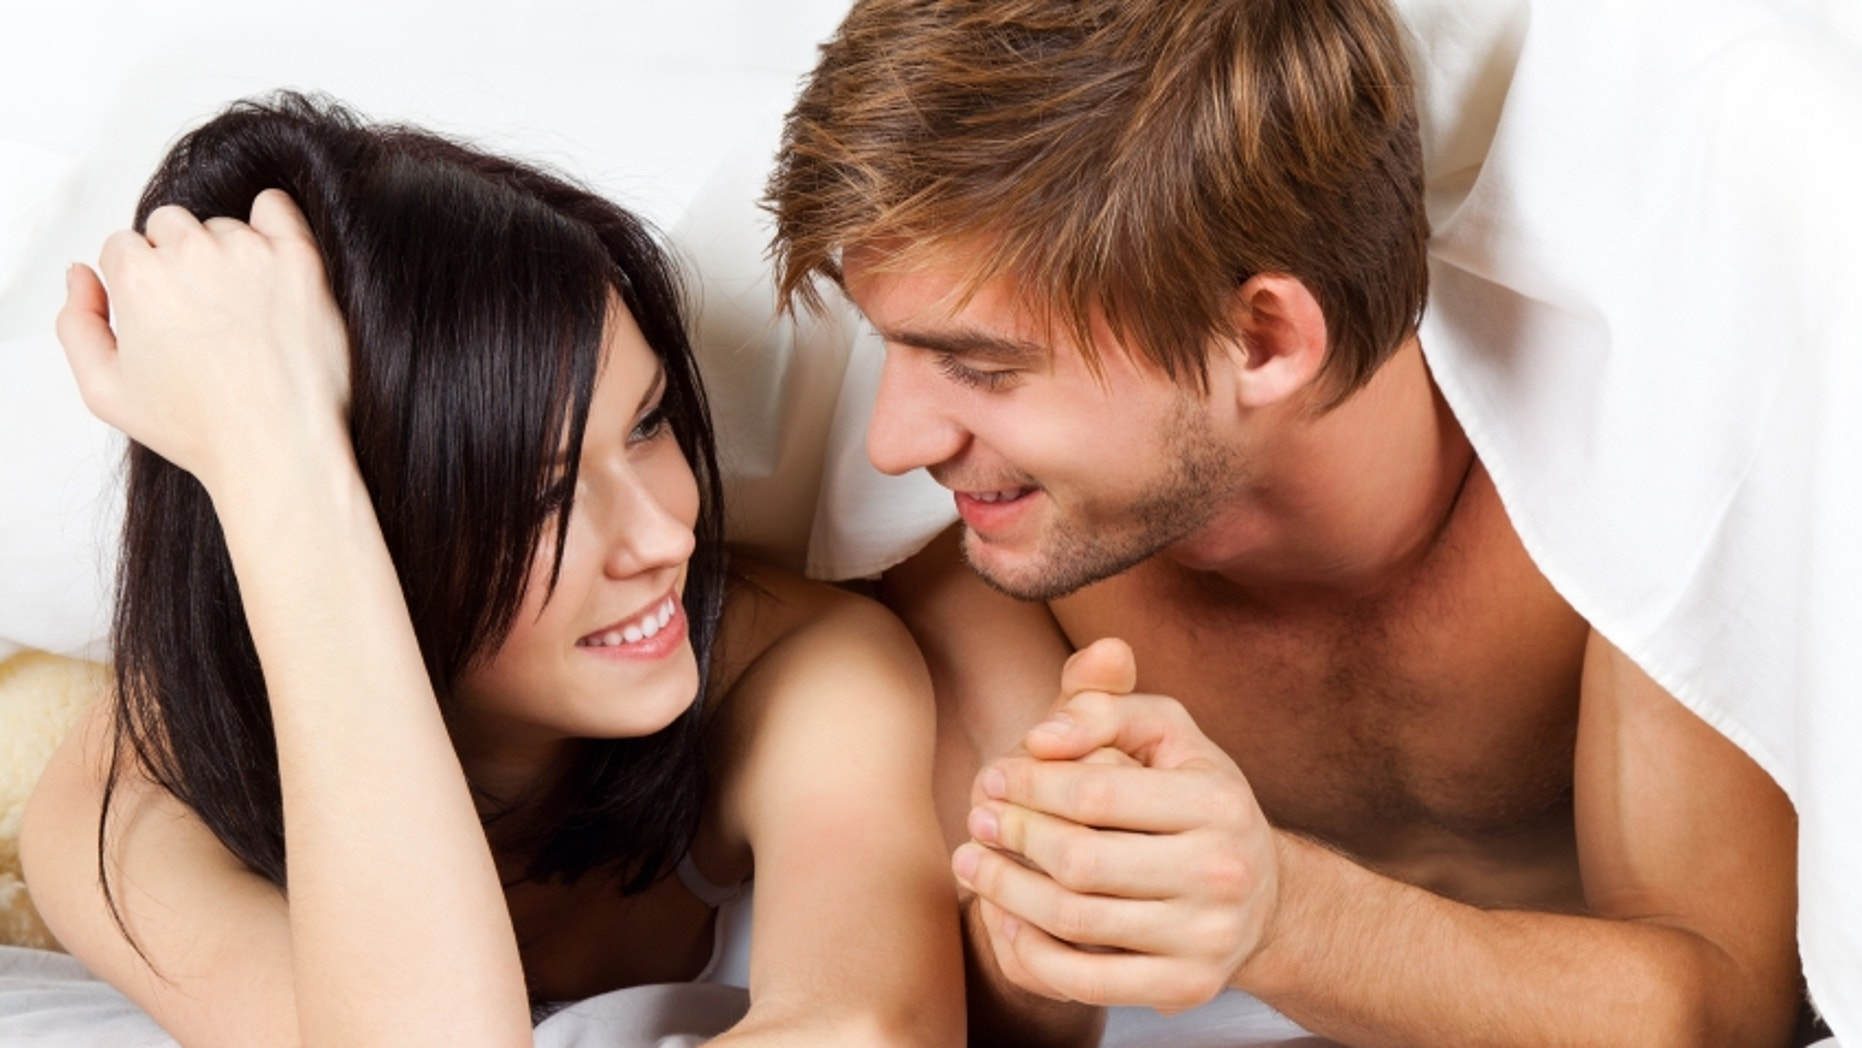 This is how sex life affects your health